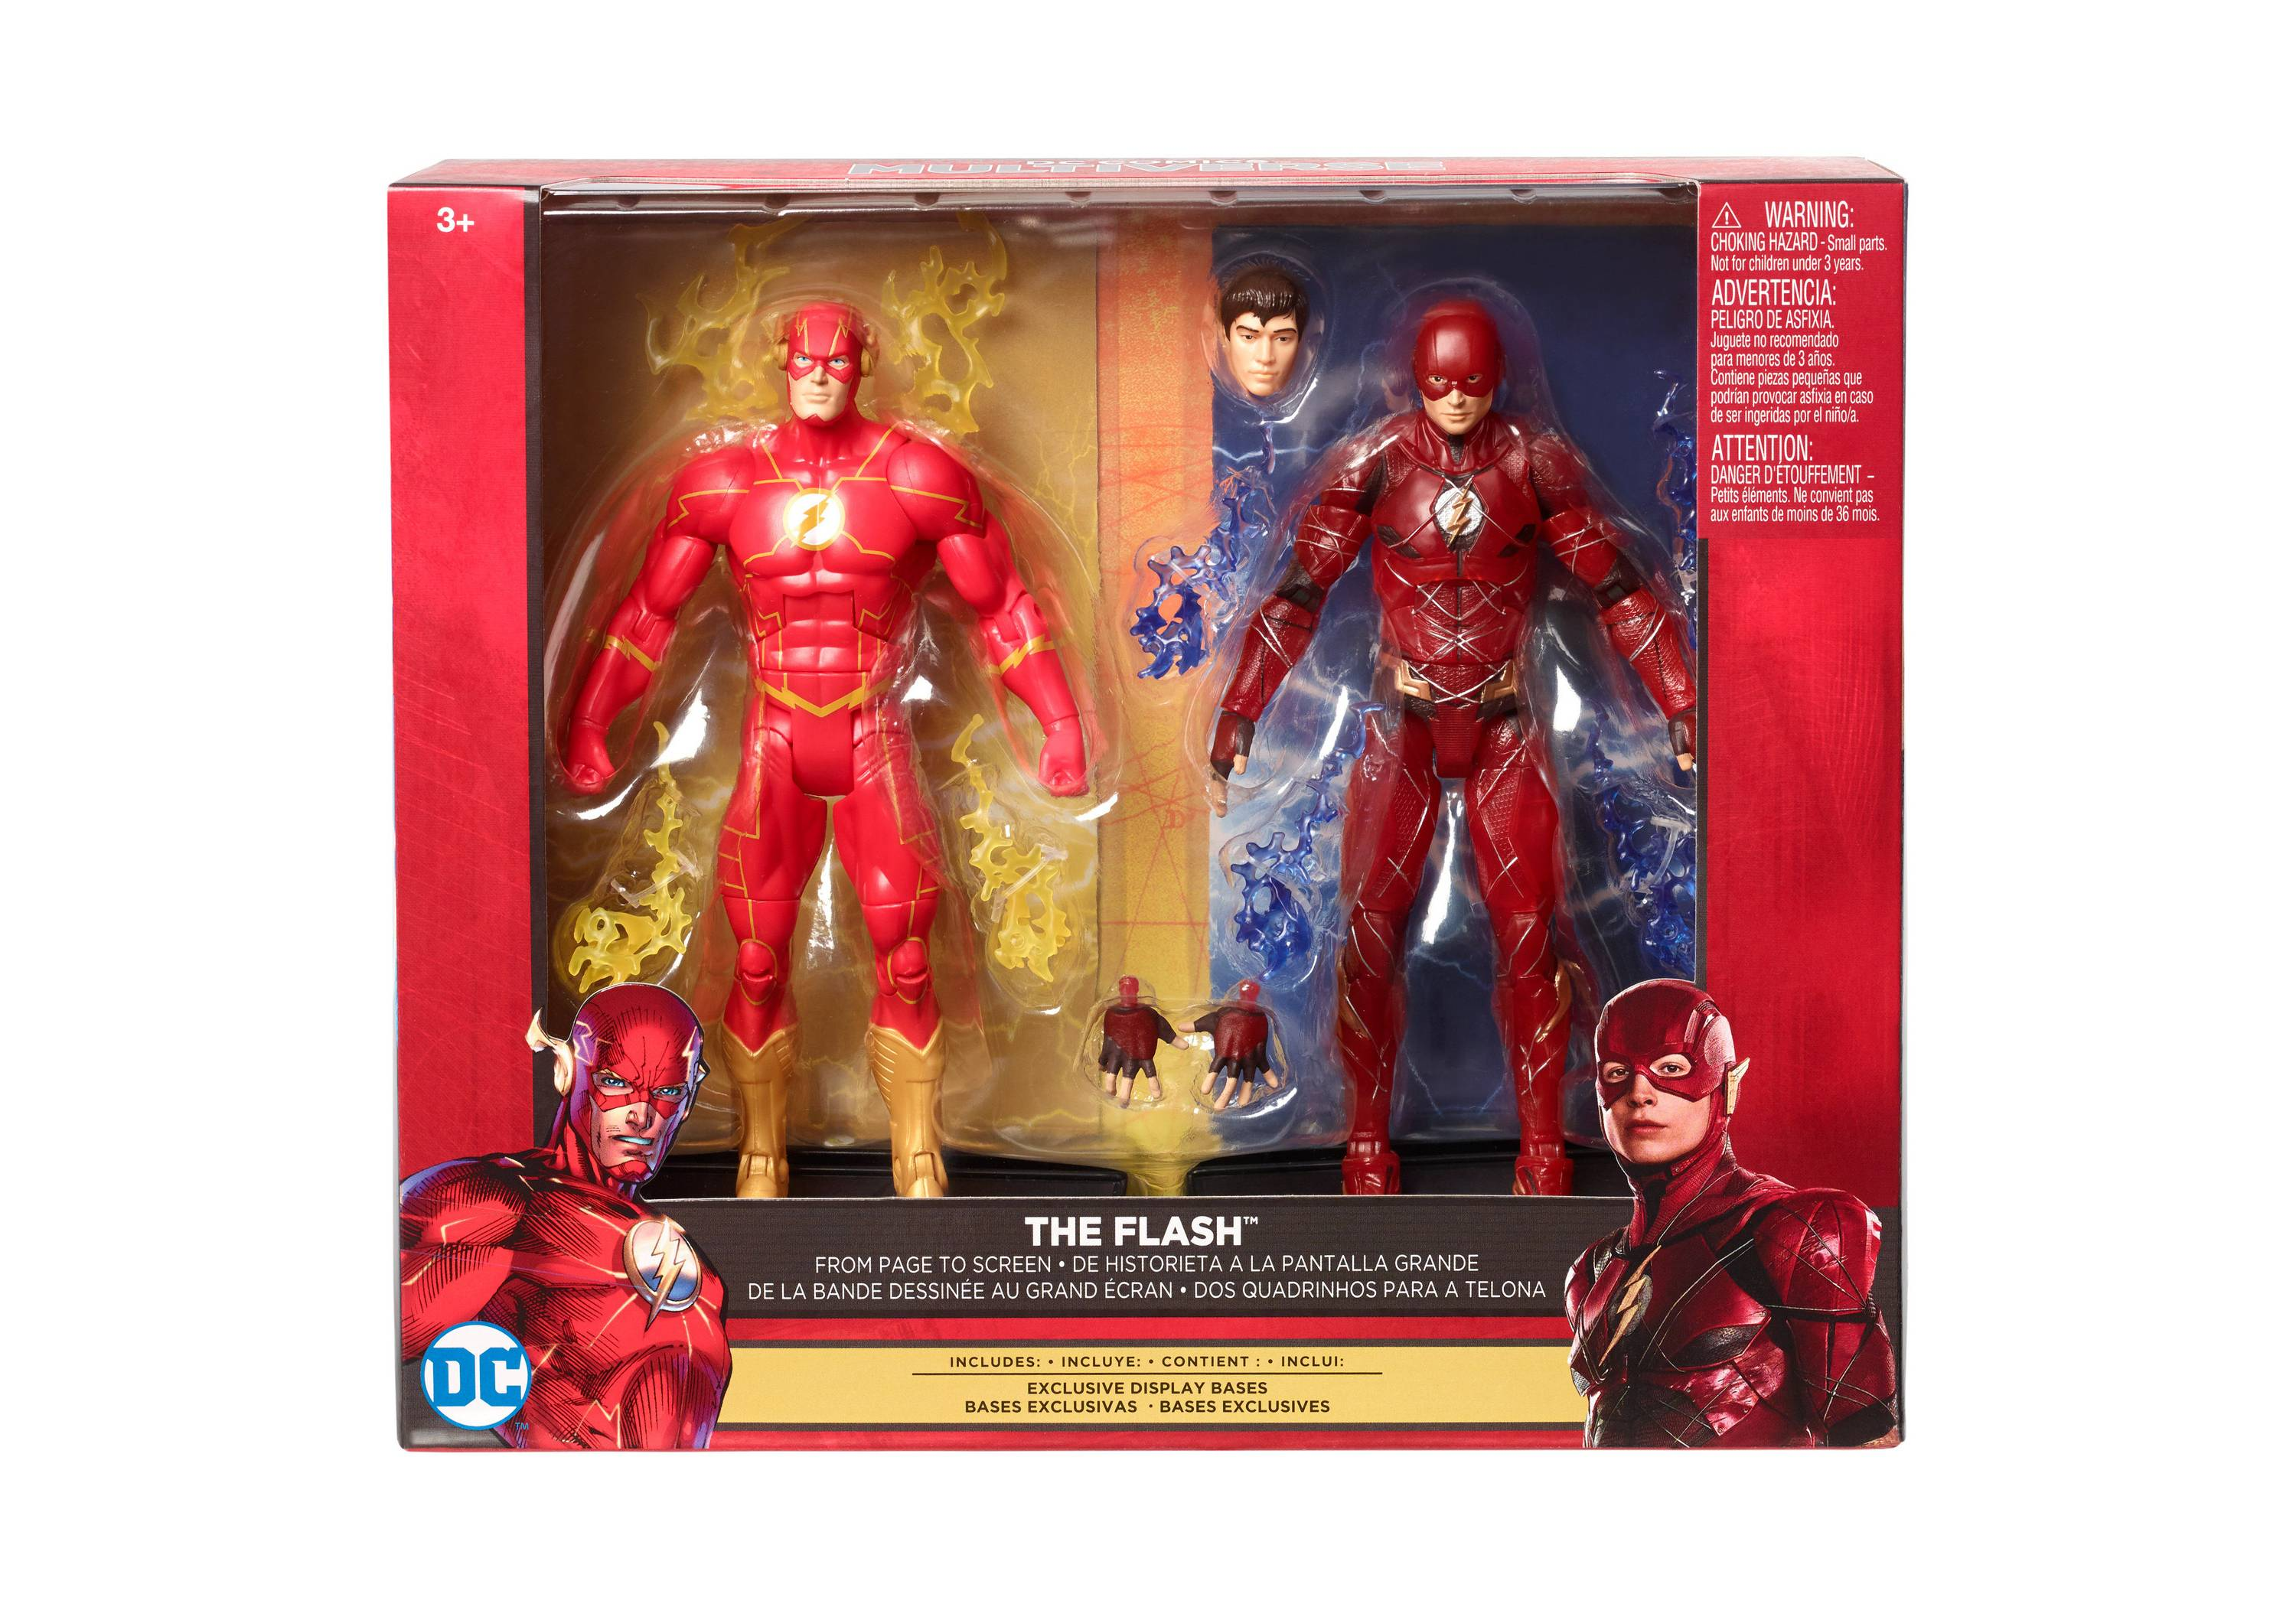 Best Justice League Toys And Action Figures For Kids : Action figure insider target reveals new mattel